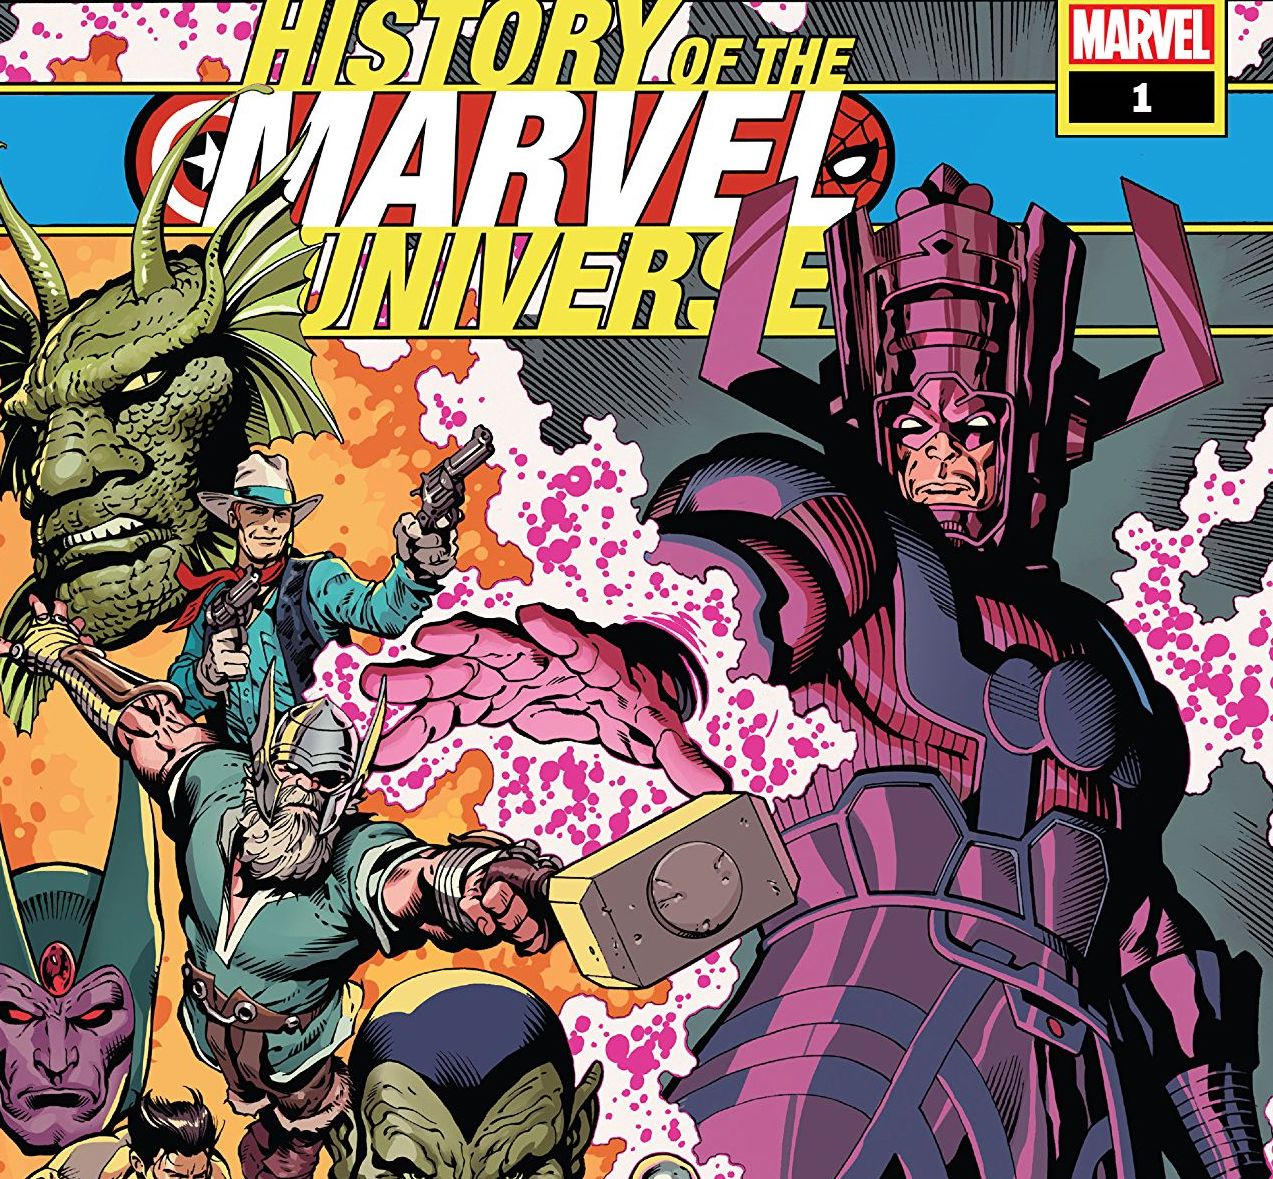 History of the Marvel Universe #1 review: class is in session